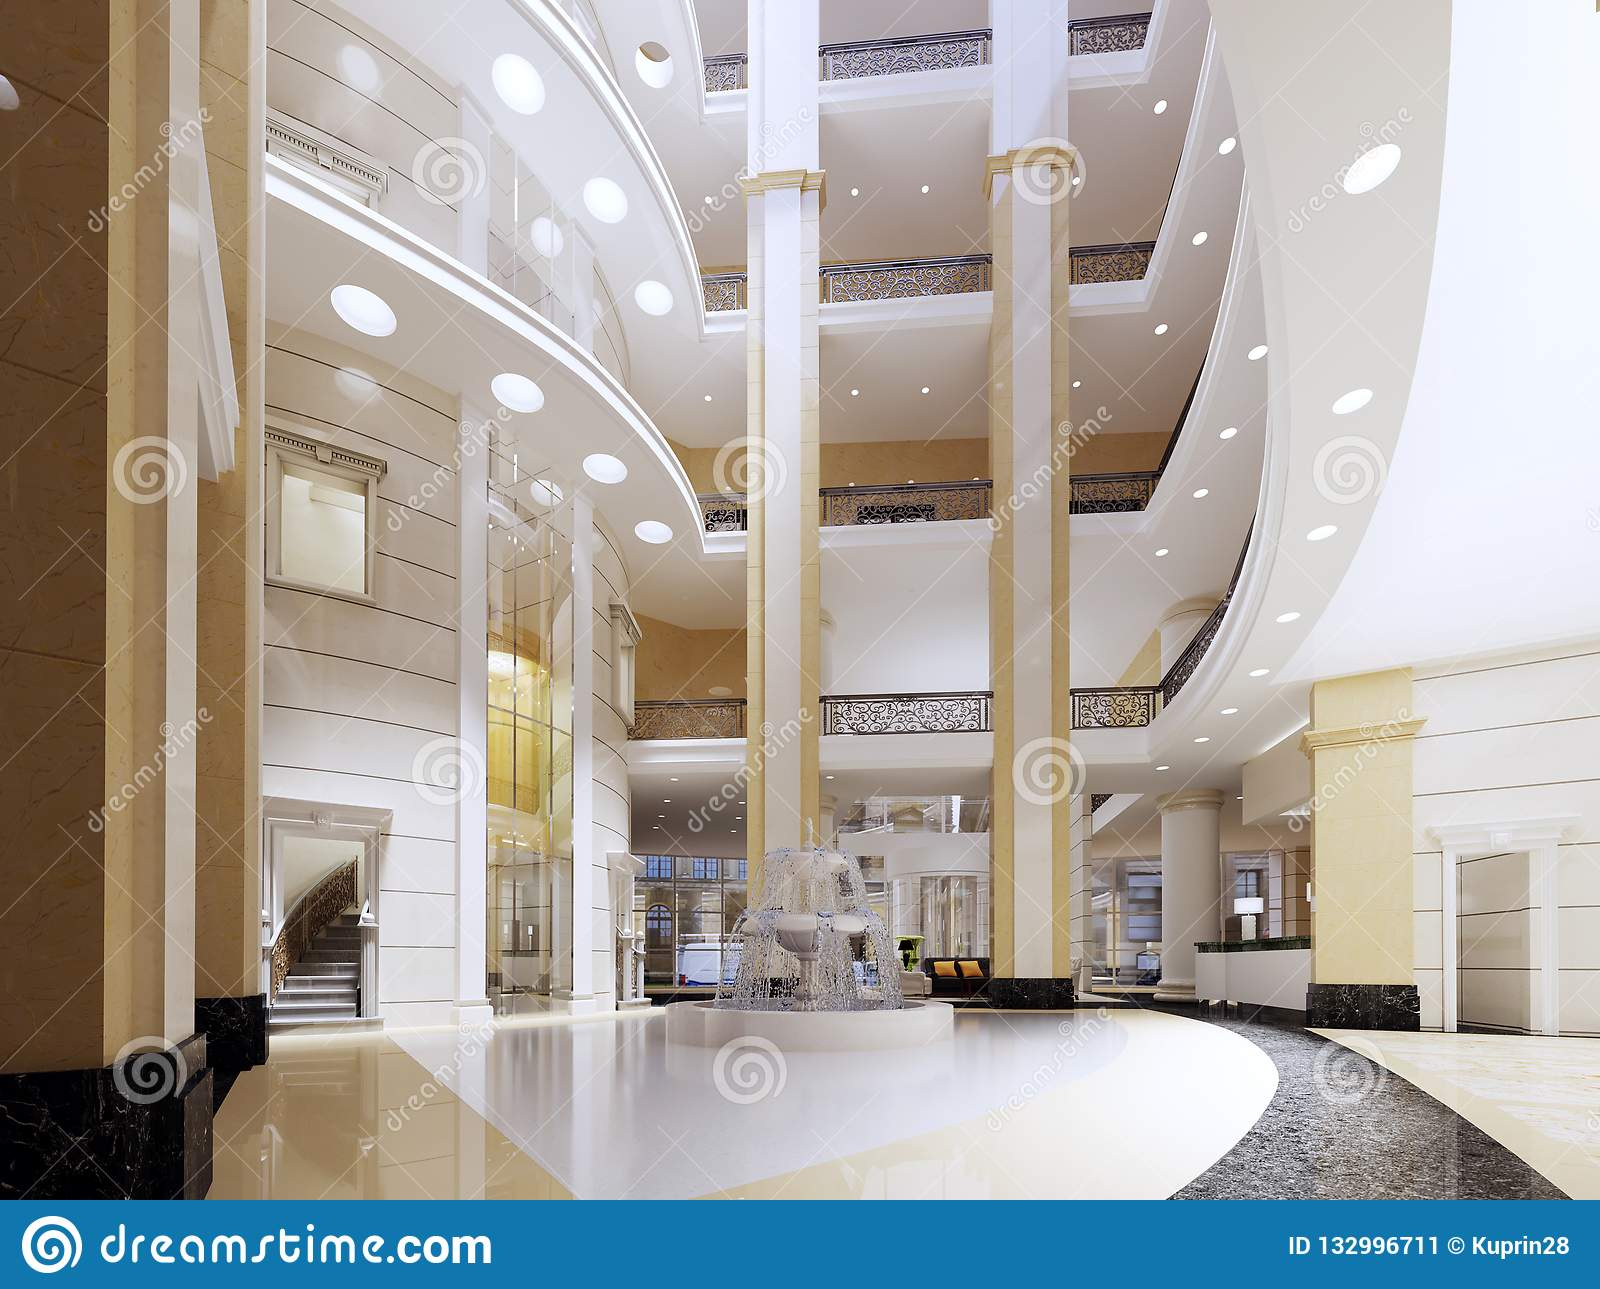 the lobby of the five star hotel in a modern style with marble walls rh dreamstime com  modern hotel style bathrooms